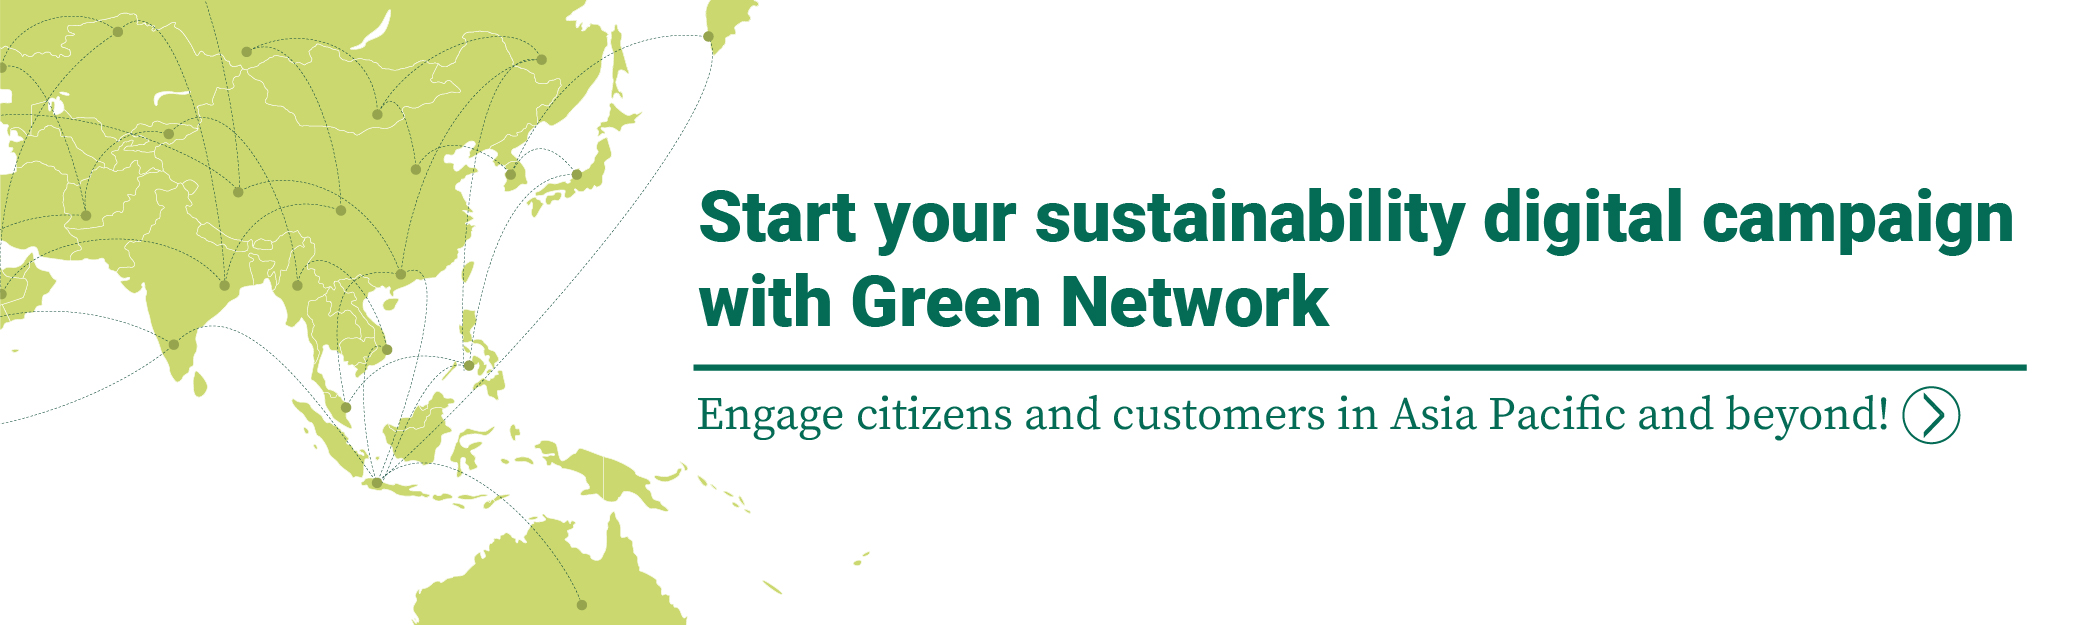 Start your sustainability digital campaign with Green Network